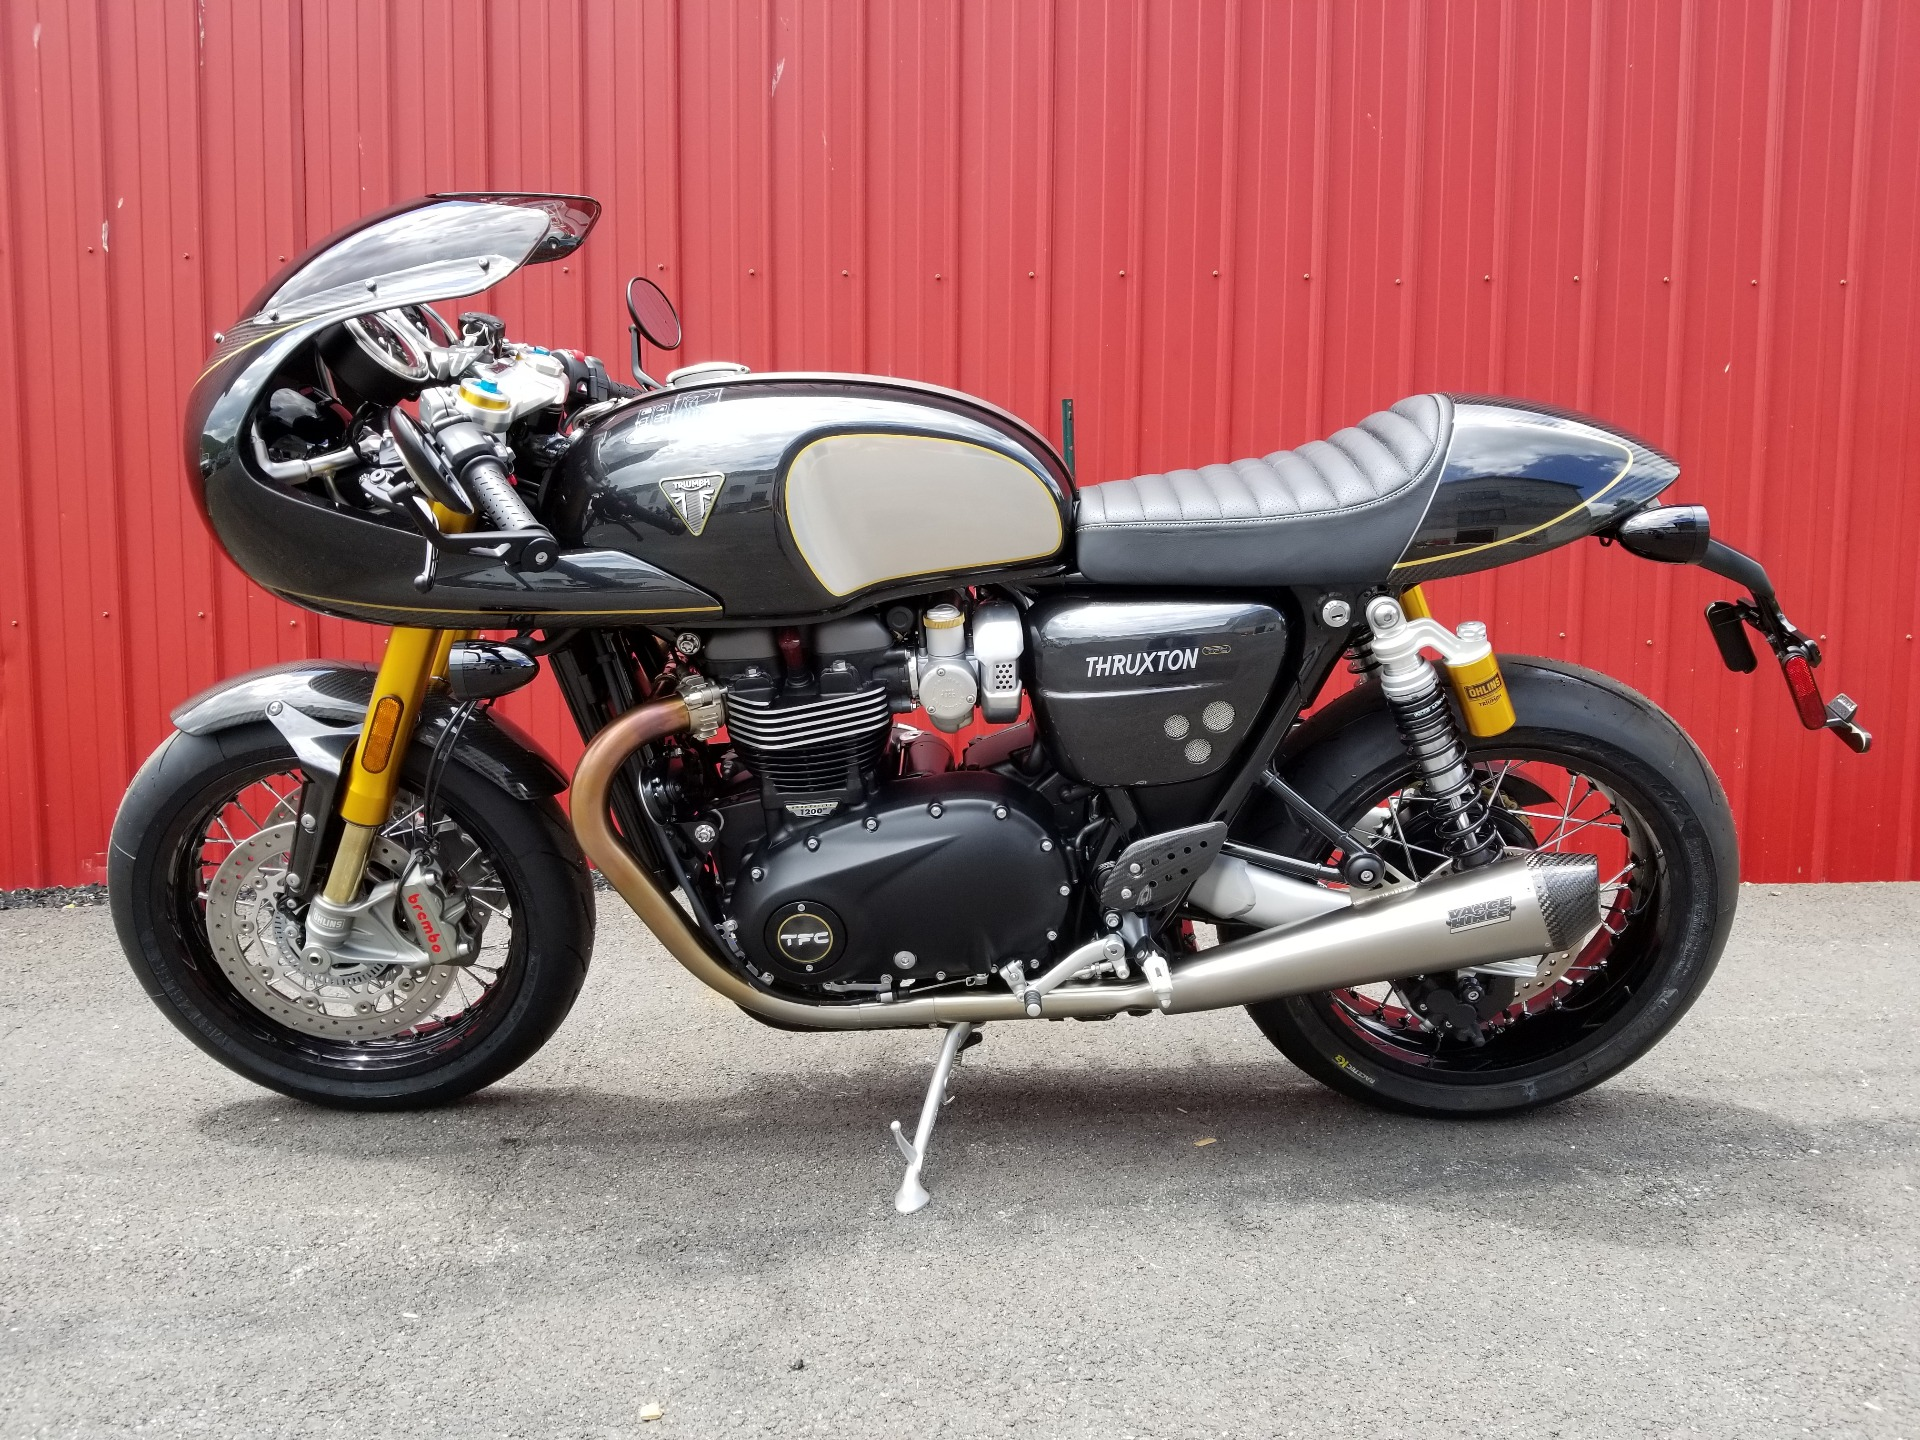 2020 Triumph Thruxton 1200 TFC in Port Clinton, Pennsylvania - Photo 2